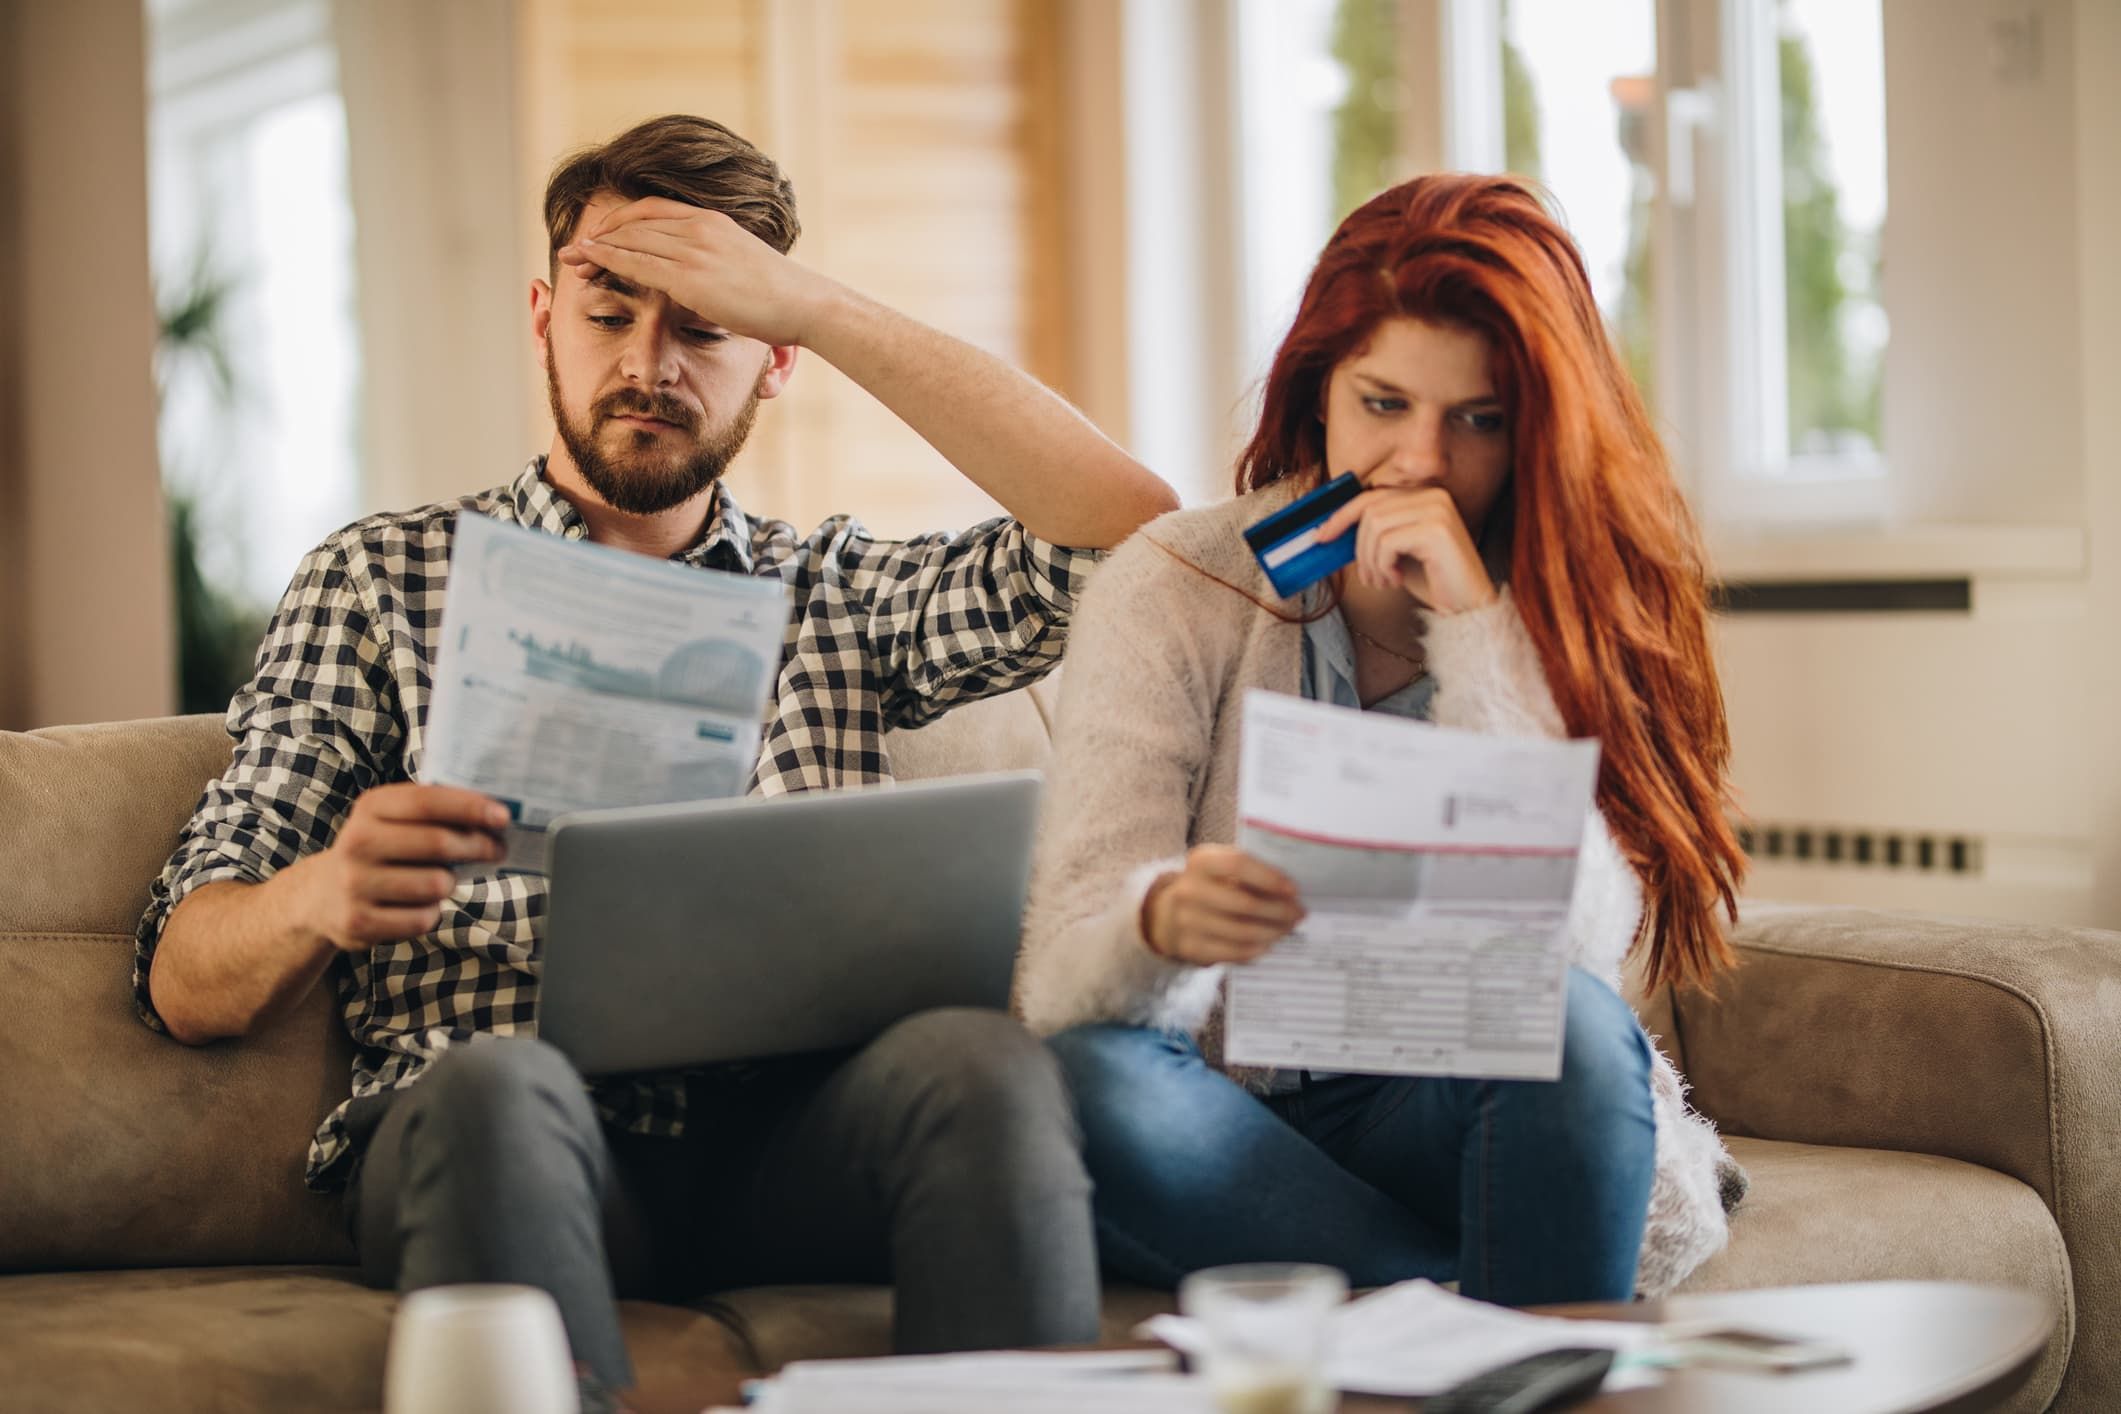 One-third of credit card debt is caused by medical bills. These steps can help you manage those bills